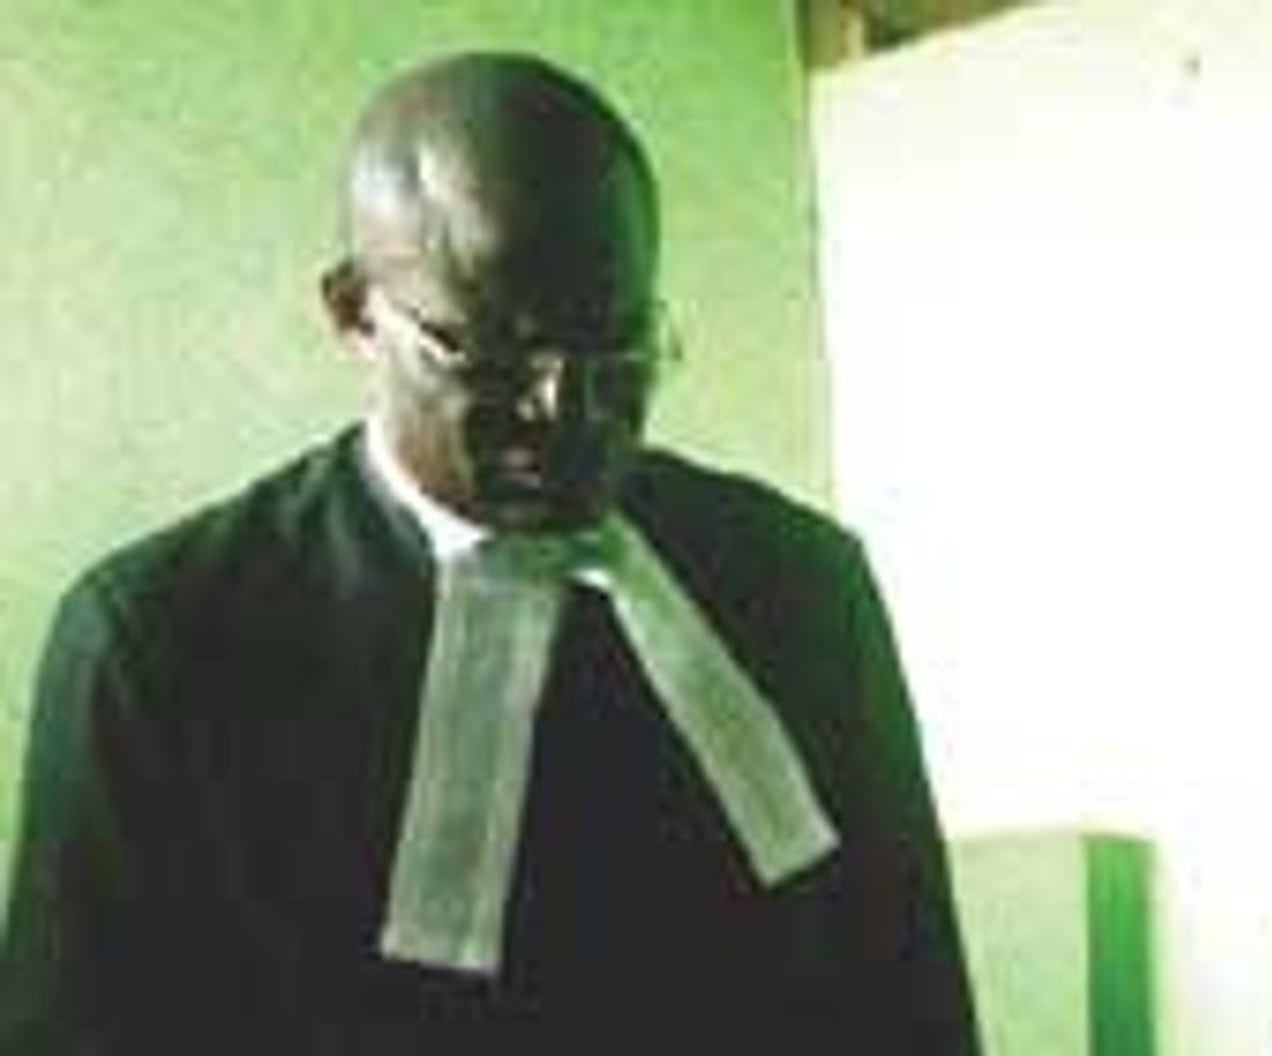 Enugu high court judge dies as COVID-19 cases soar in state - Daily Sun